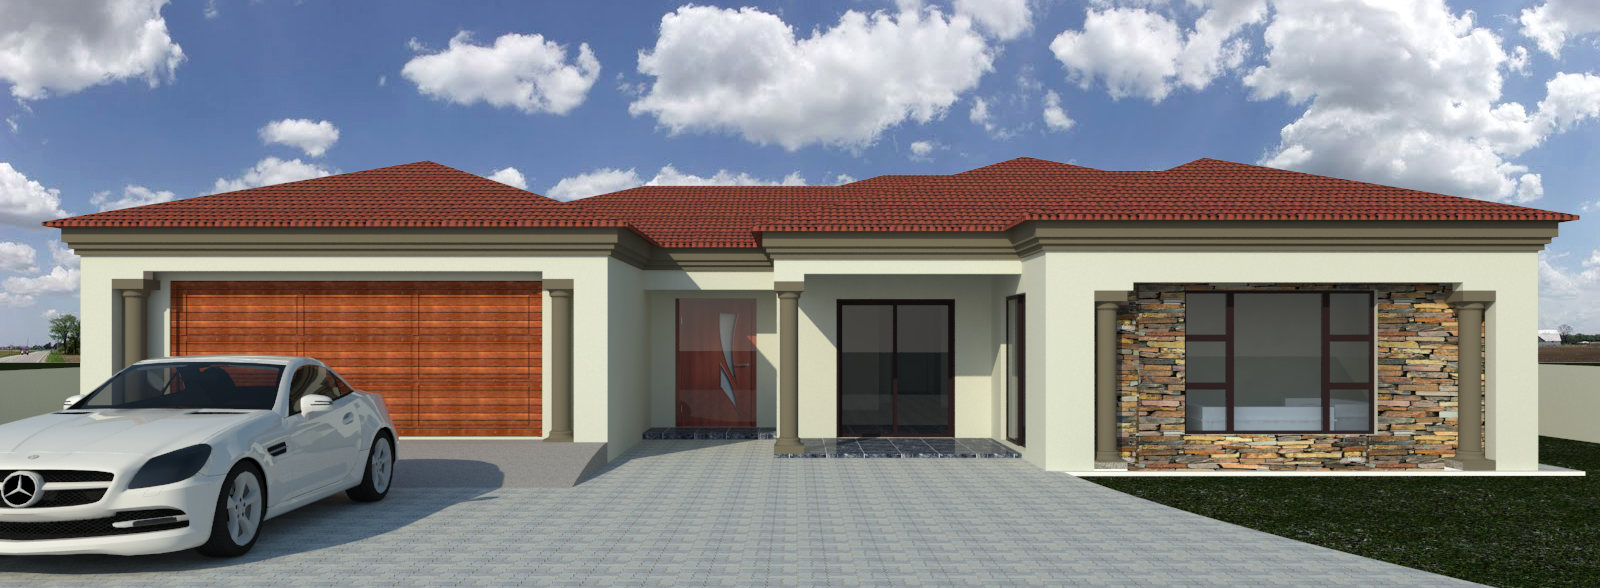 My house plans south africa my house plans most for House plans that are cheap to build